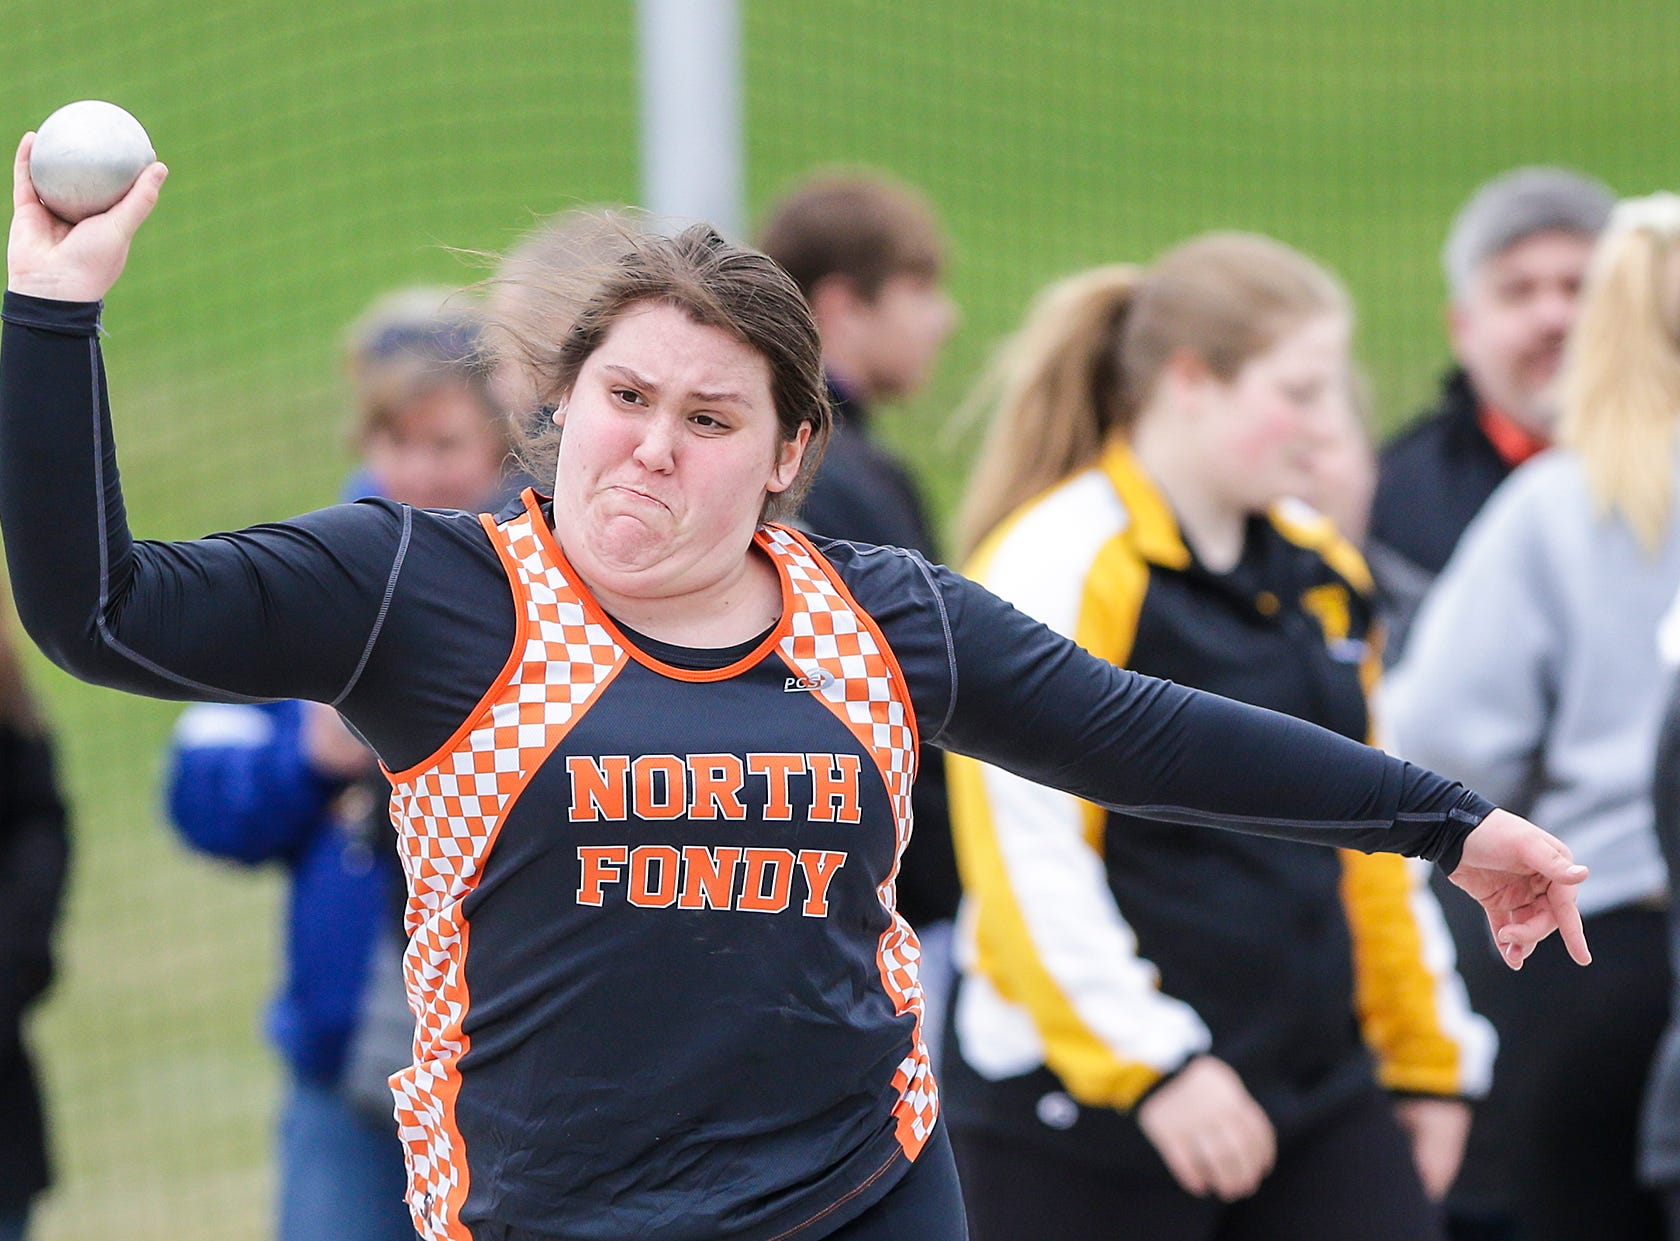 Alexis Thielke of North Fond du Lac High School competes in the shot put Friday, May 3, 2019 at the Waupun High School Invitational track and field meet. Doug Raflik/USA TODAY NETWORK-Wisconsin